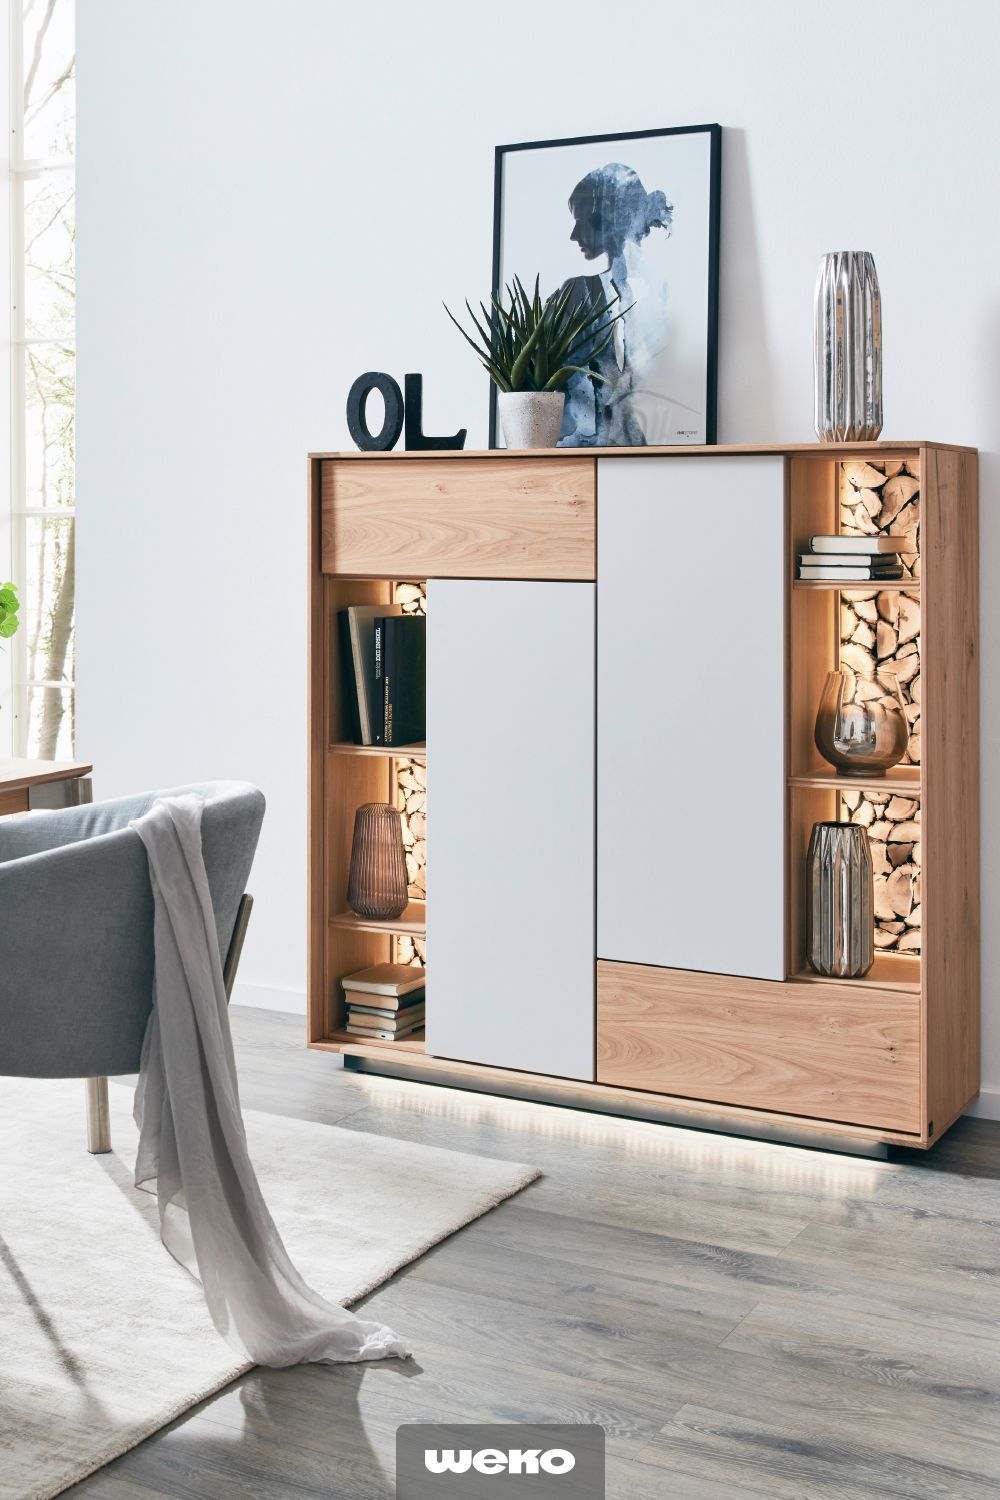 Modern Highboard From The Interliving Series 5602 With Firewood Backs Backs Firewood Highboard Interliving Small Living Room Design Modern Dining Room Home